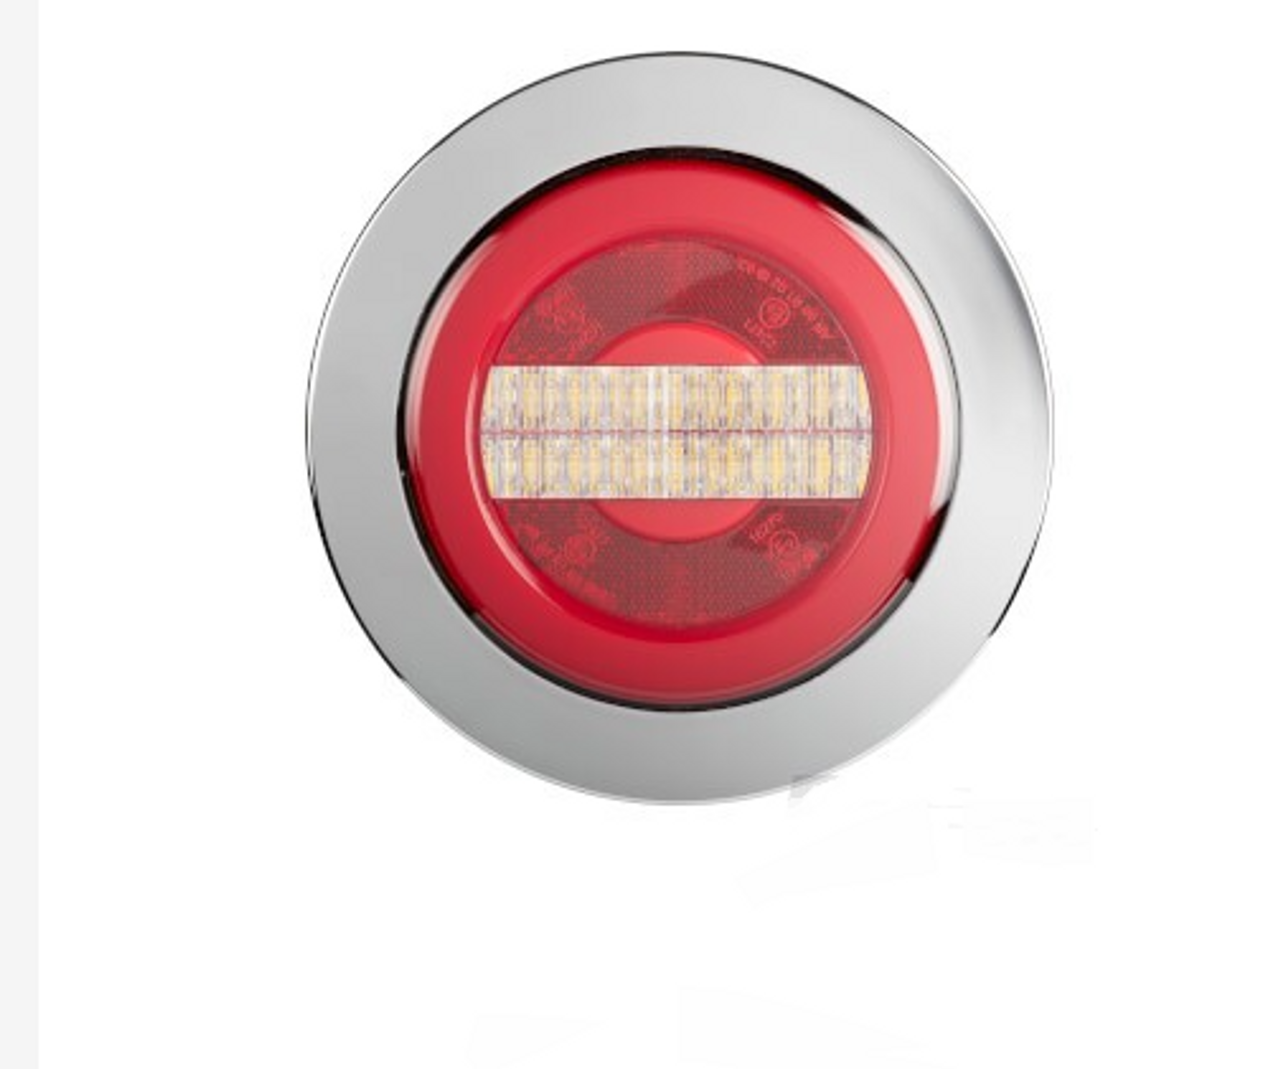 BR152RWC - Reverse Round Light with Tail Light. Chrome Surrounding. Glow Tail Light. Recessed Mount. Multi-Volt. Single Pack. RoadVision. Ultimate LED.